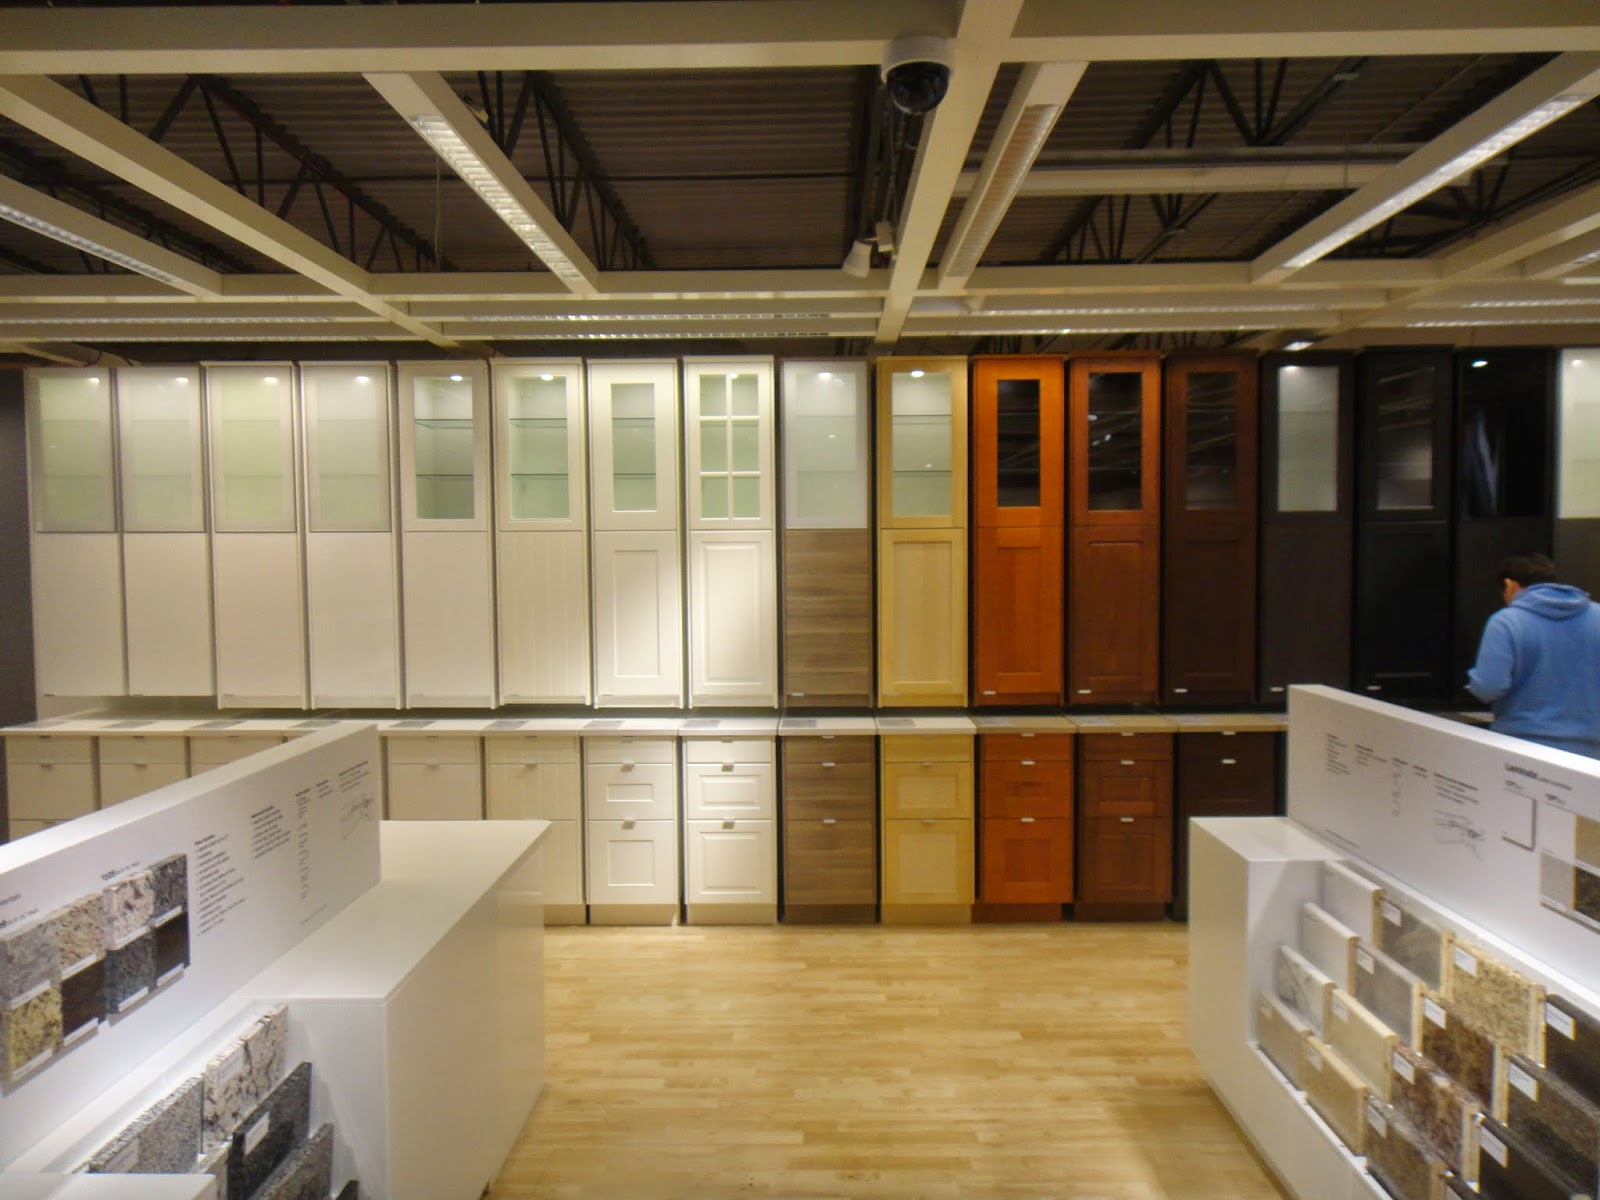 Studio Kosnik: IKEA's SEKTION - The Good, the Bad and the ...